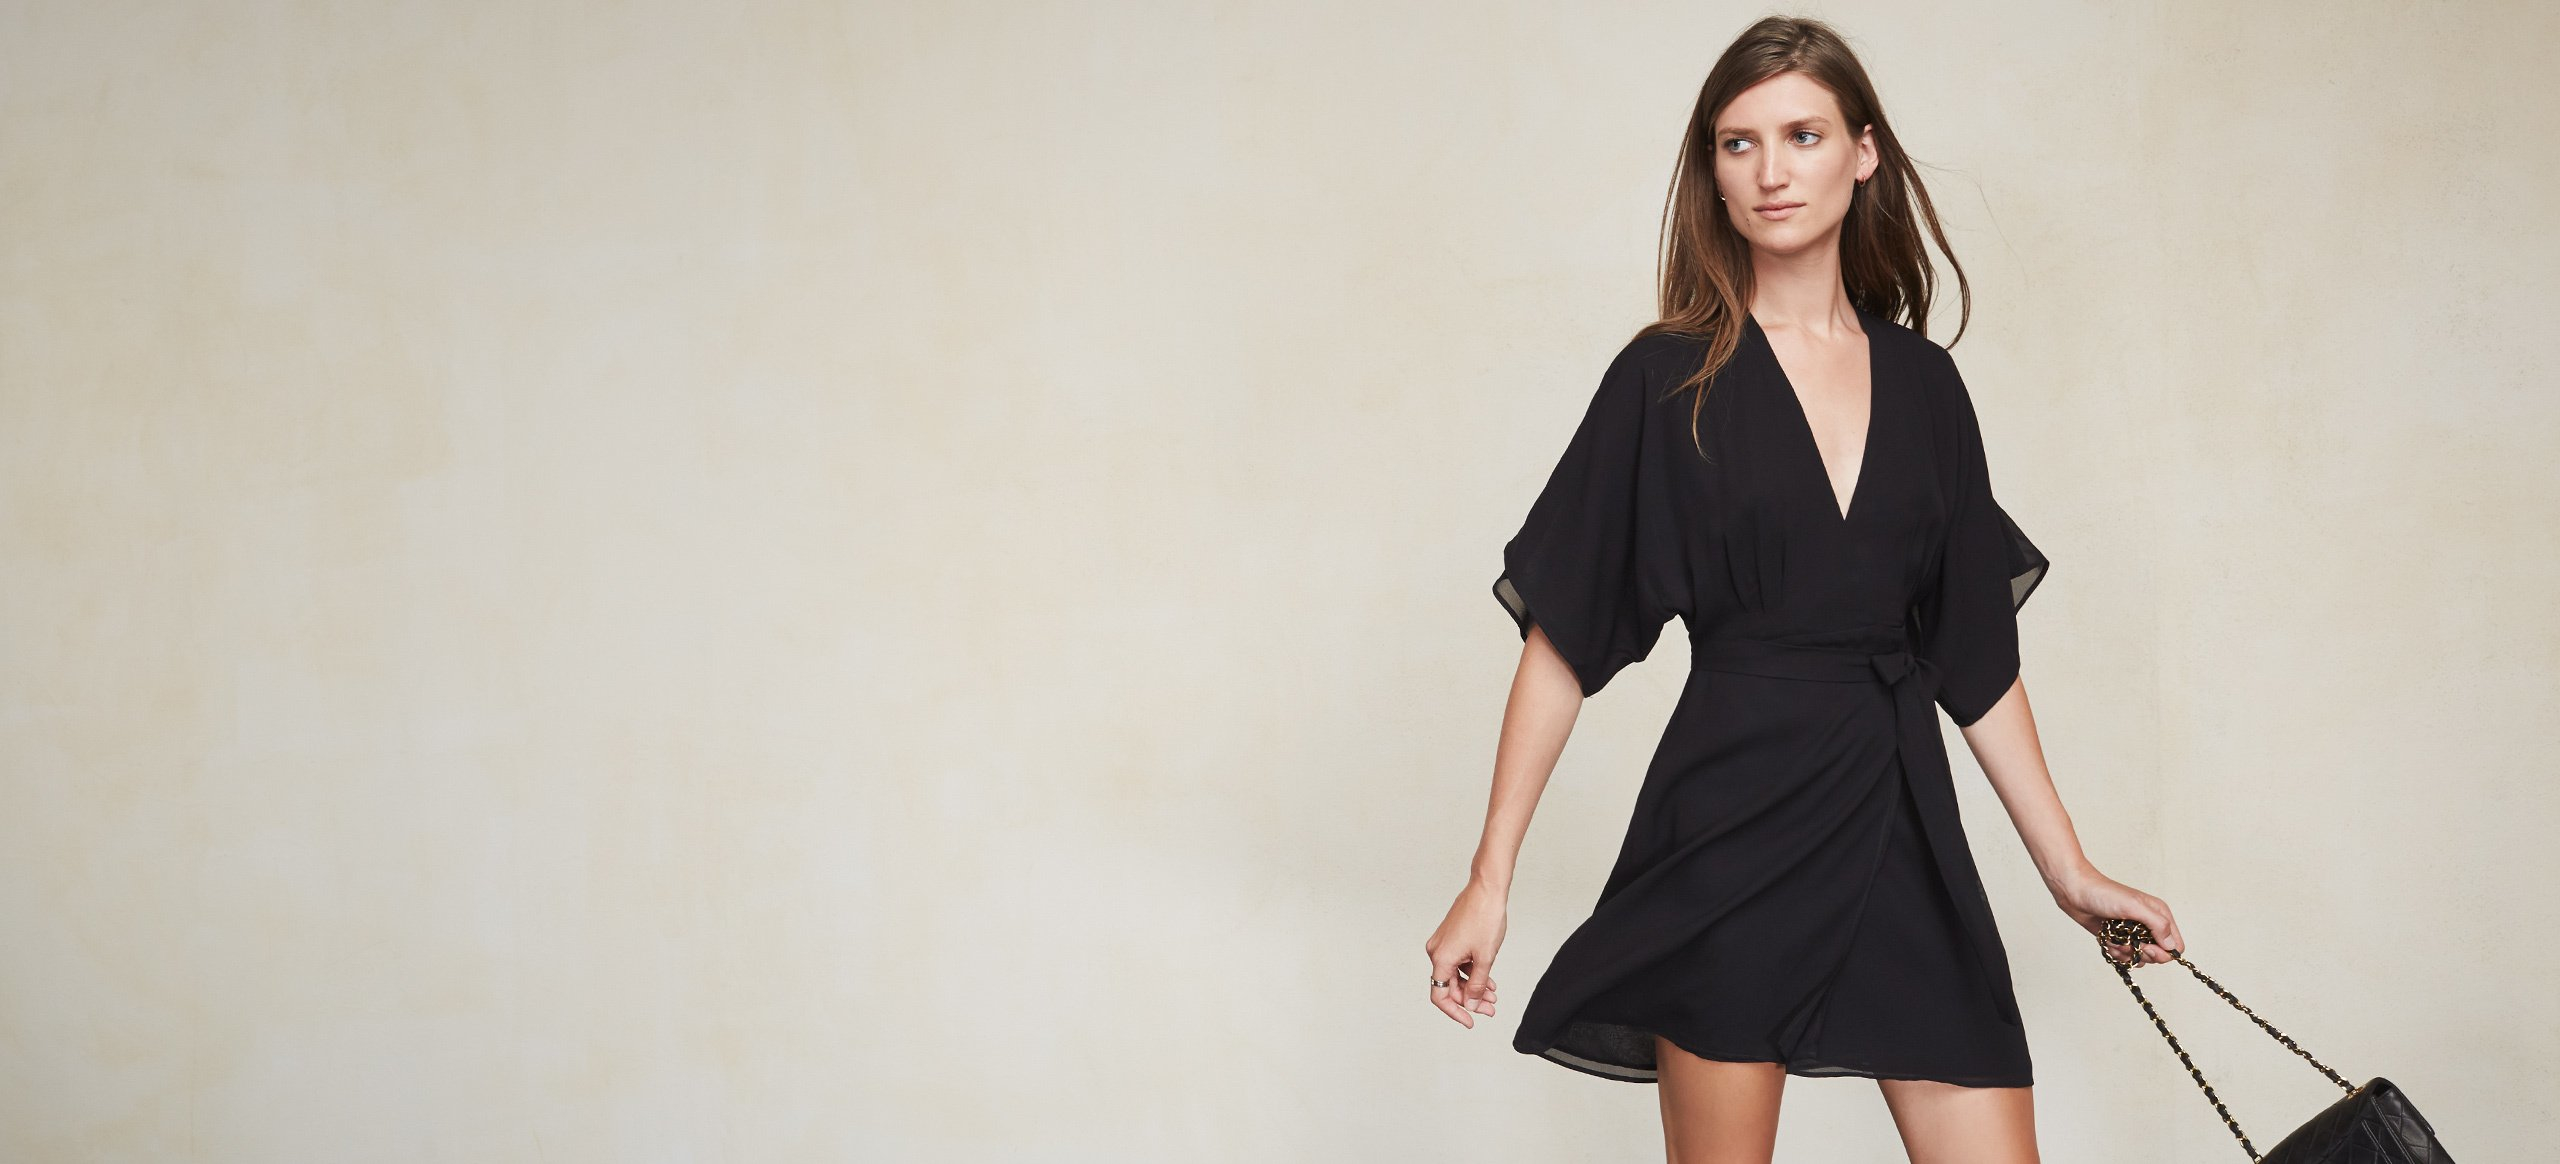 tahara women Find a great selection of women's tahari clothing at boscov's we have a variety of dresses, suits, and sunglasses for formal occasions shop online today.